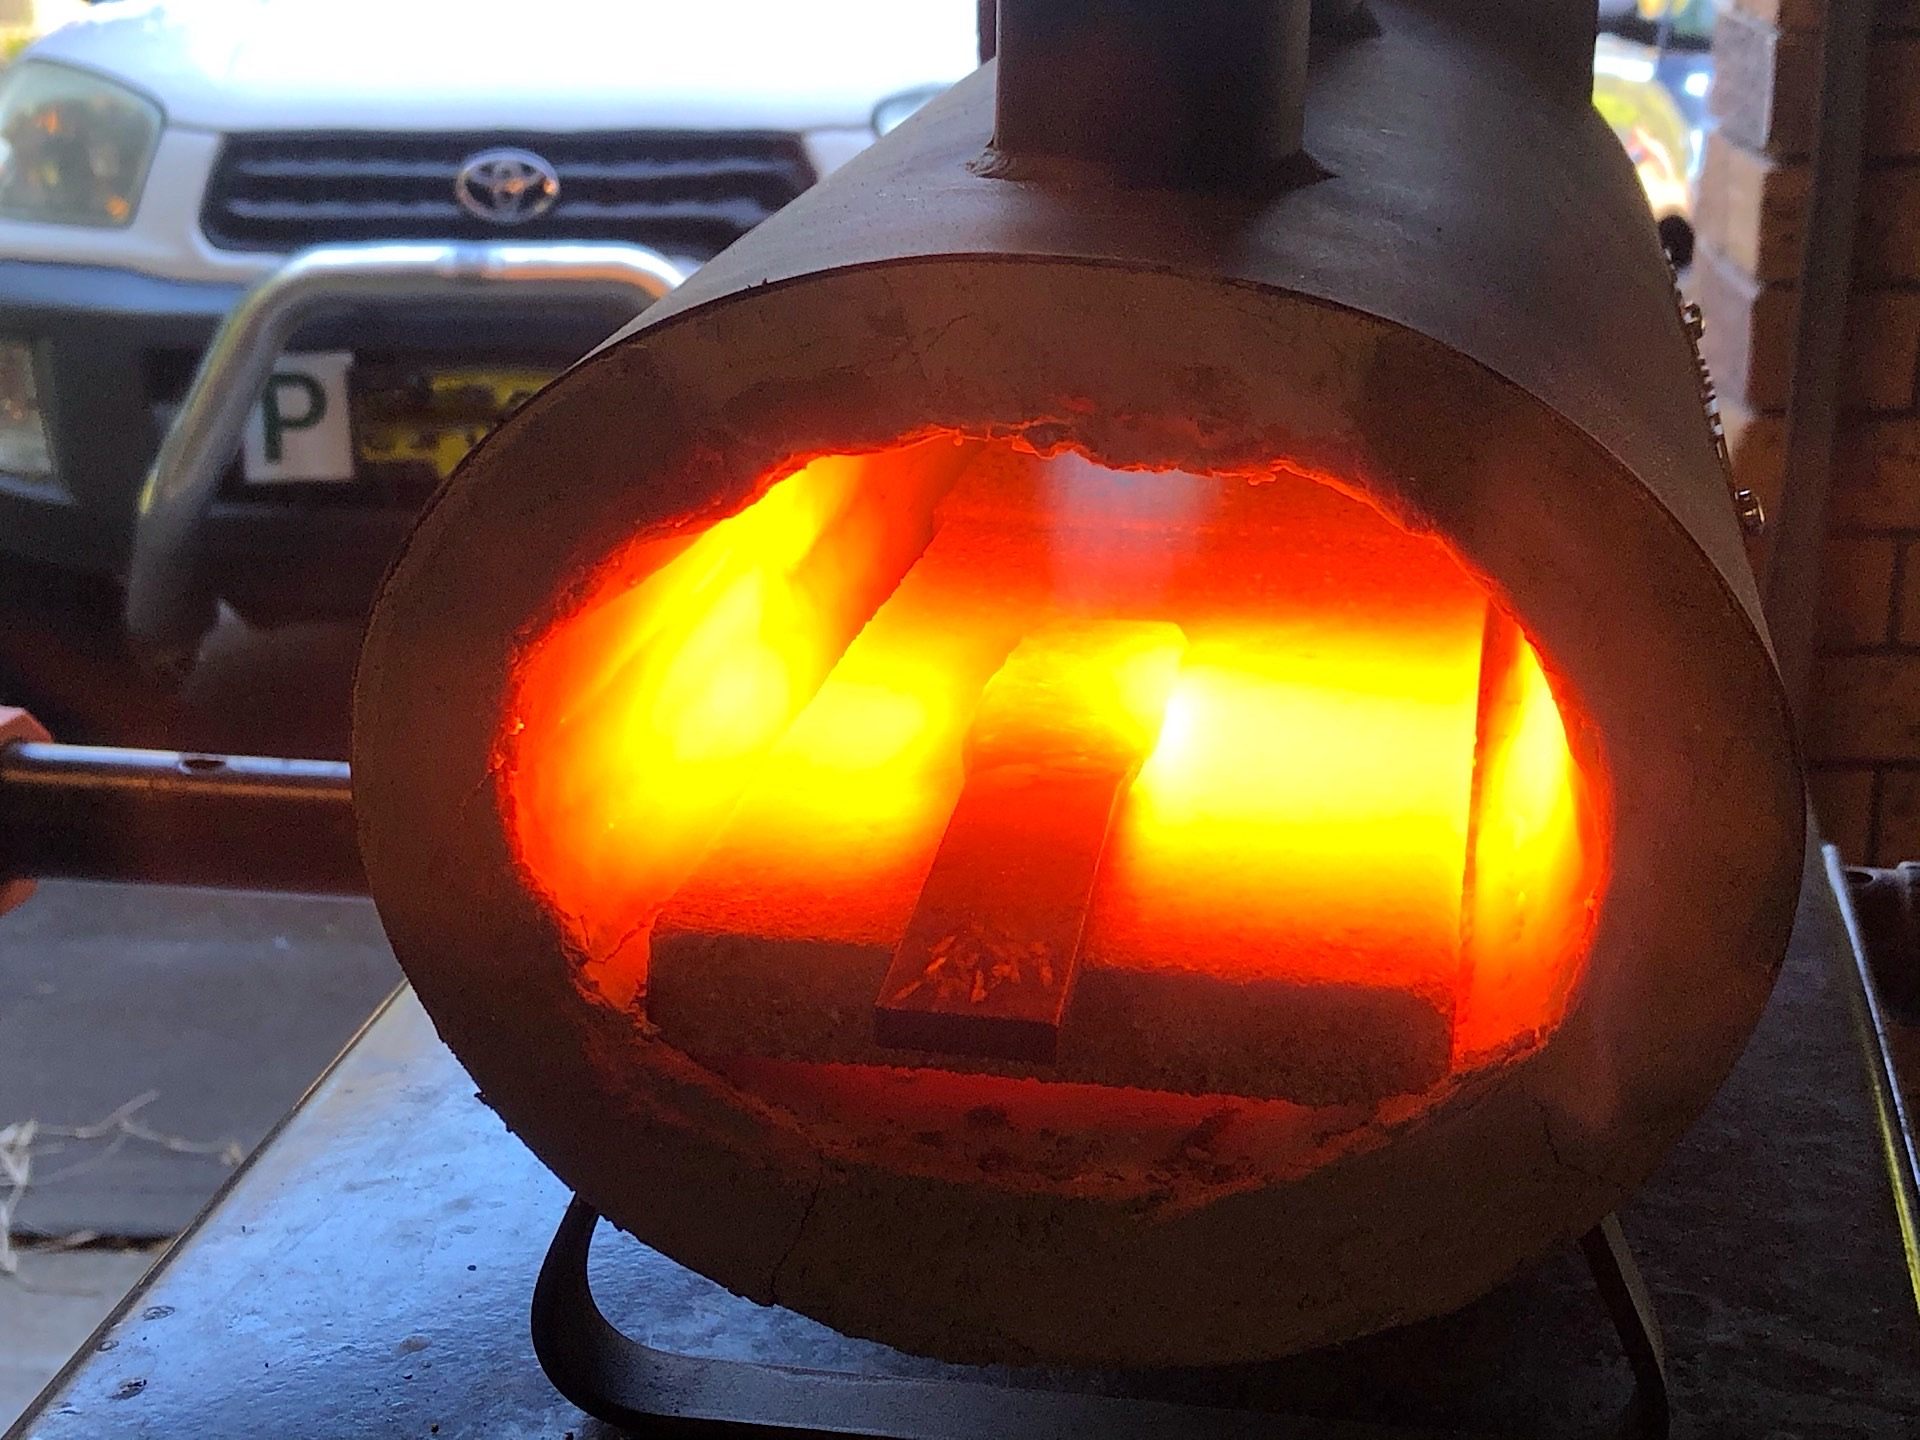 Heating an old file for forging